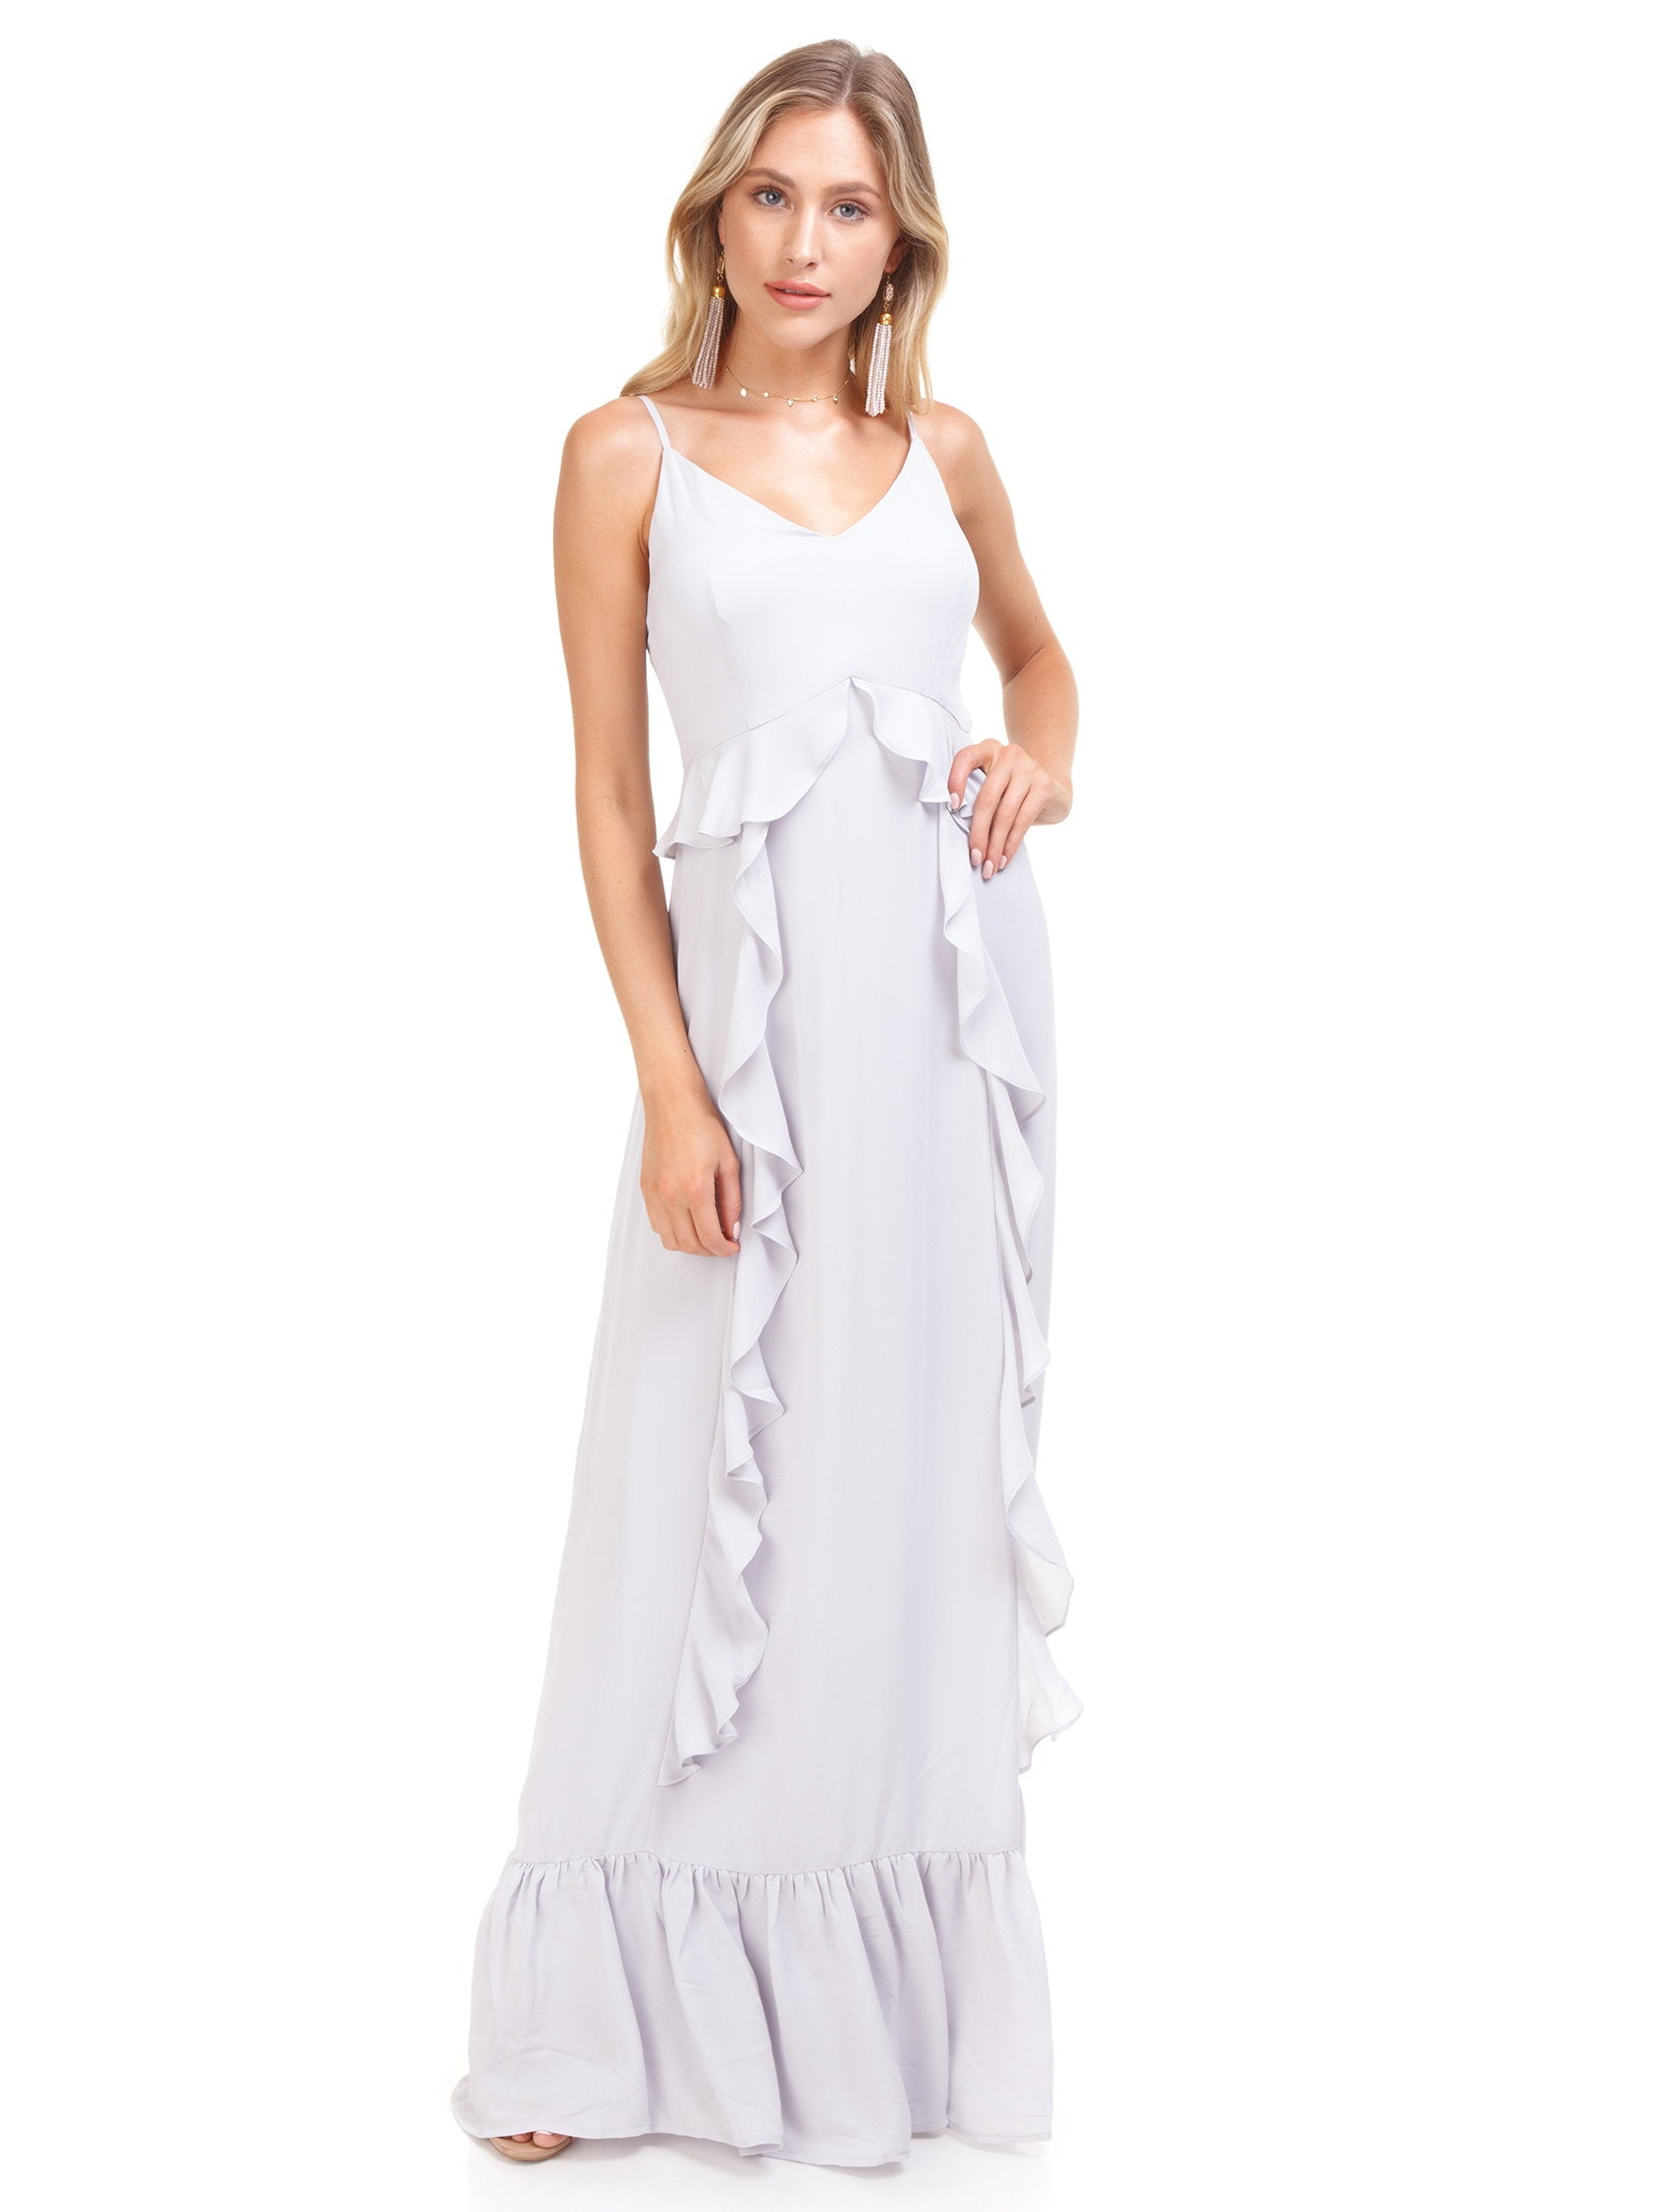 Girl outfit in a dress rental from WAYF called Loyal Ruffle Empire Tiered Maxi